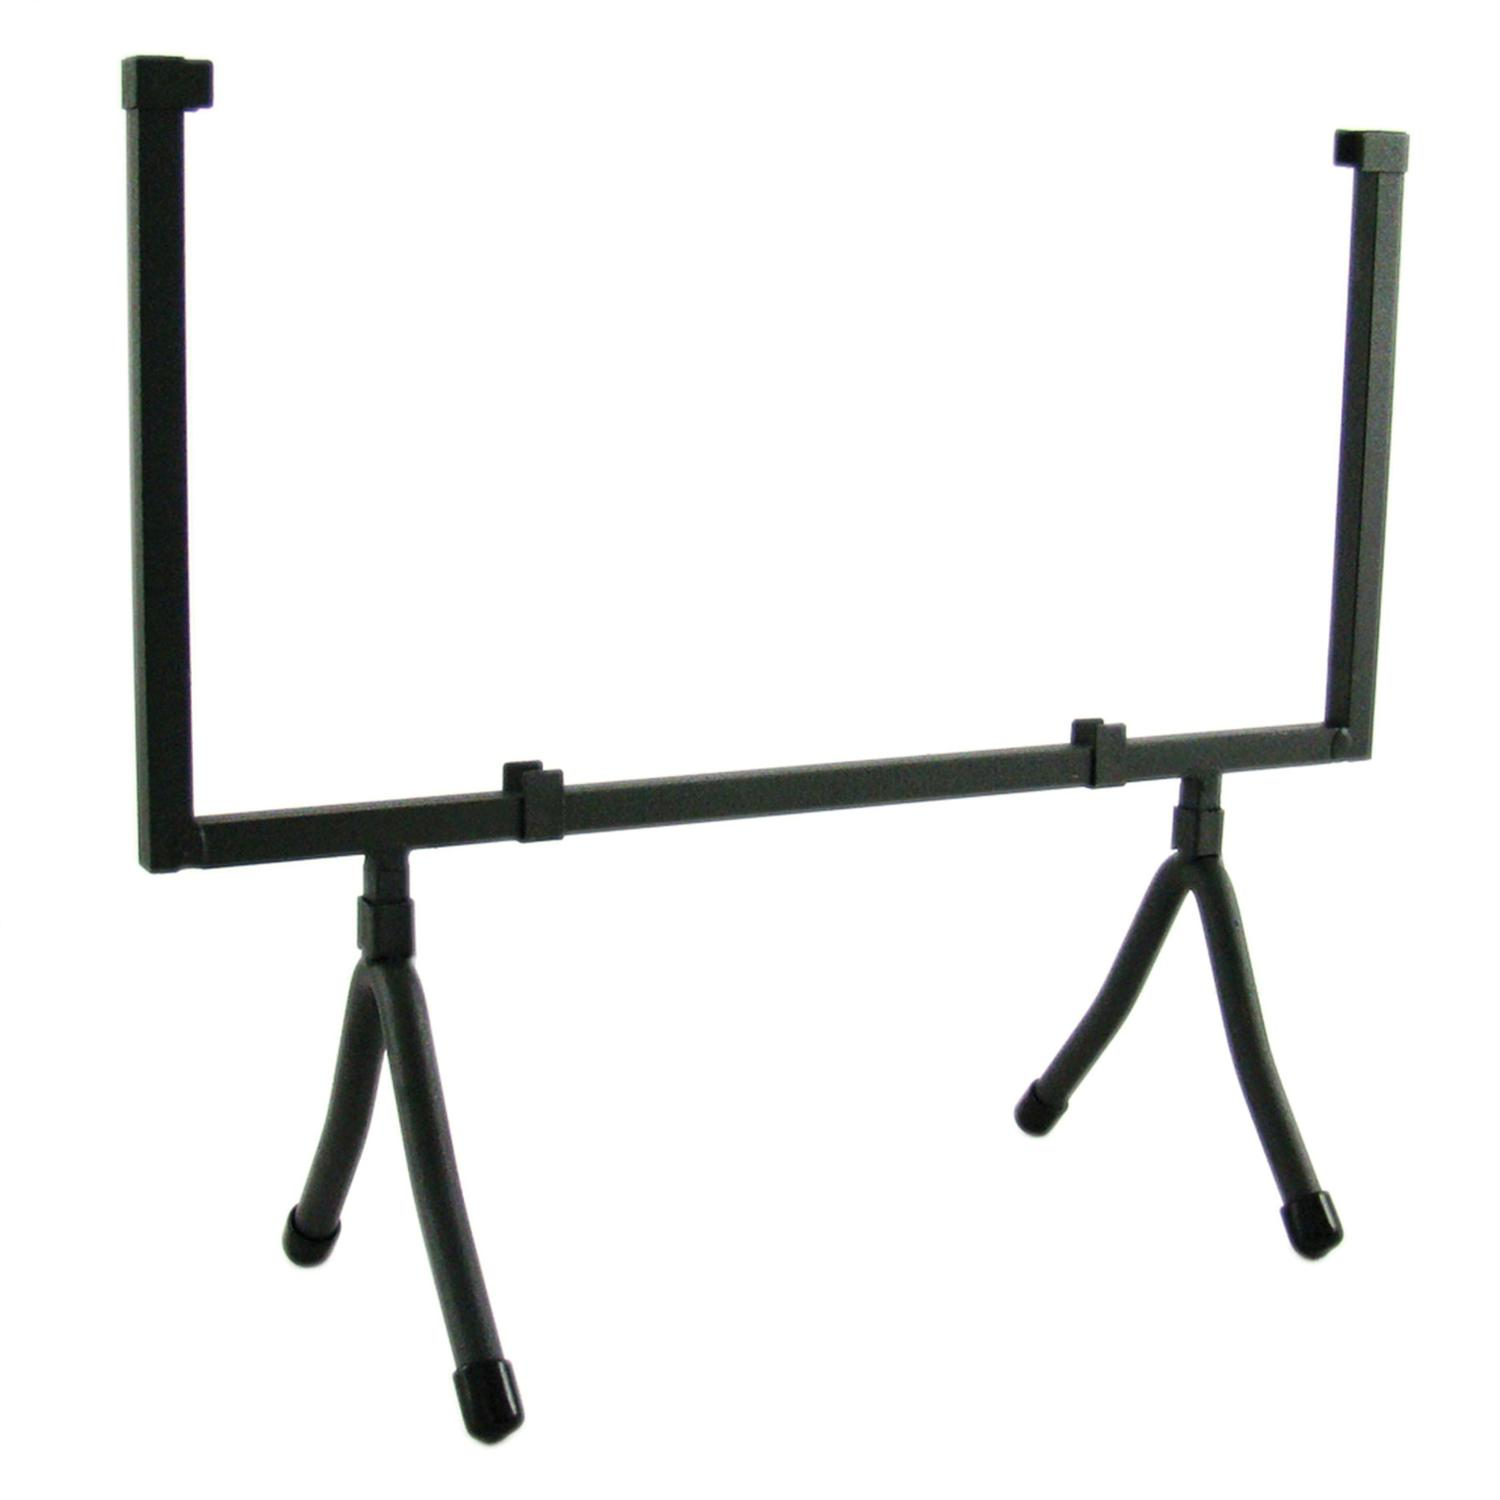 12 Quot Square Black Iron Art Holder Table Stands Table Stands